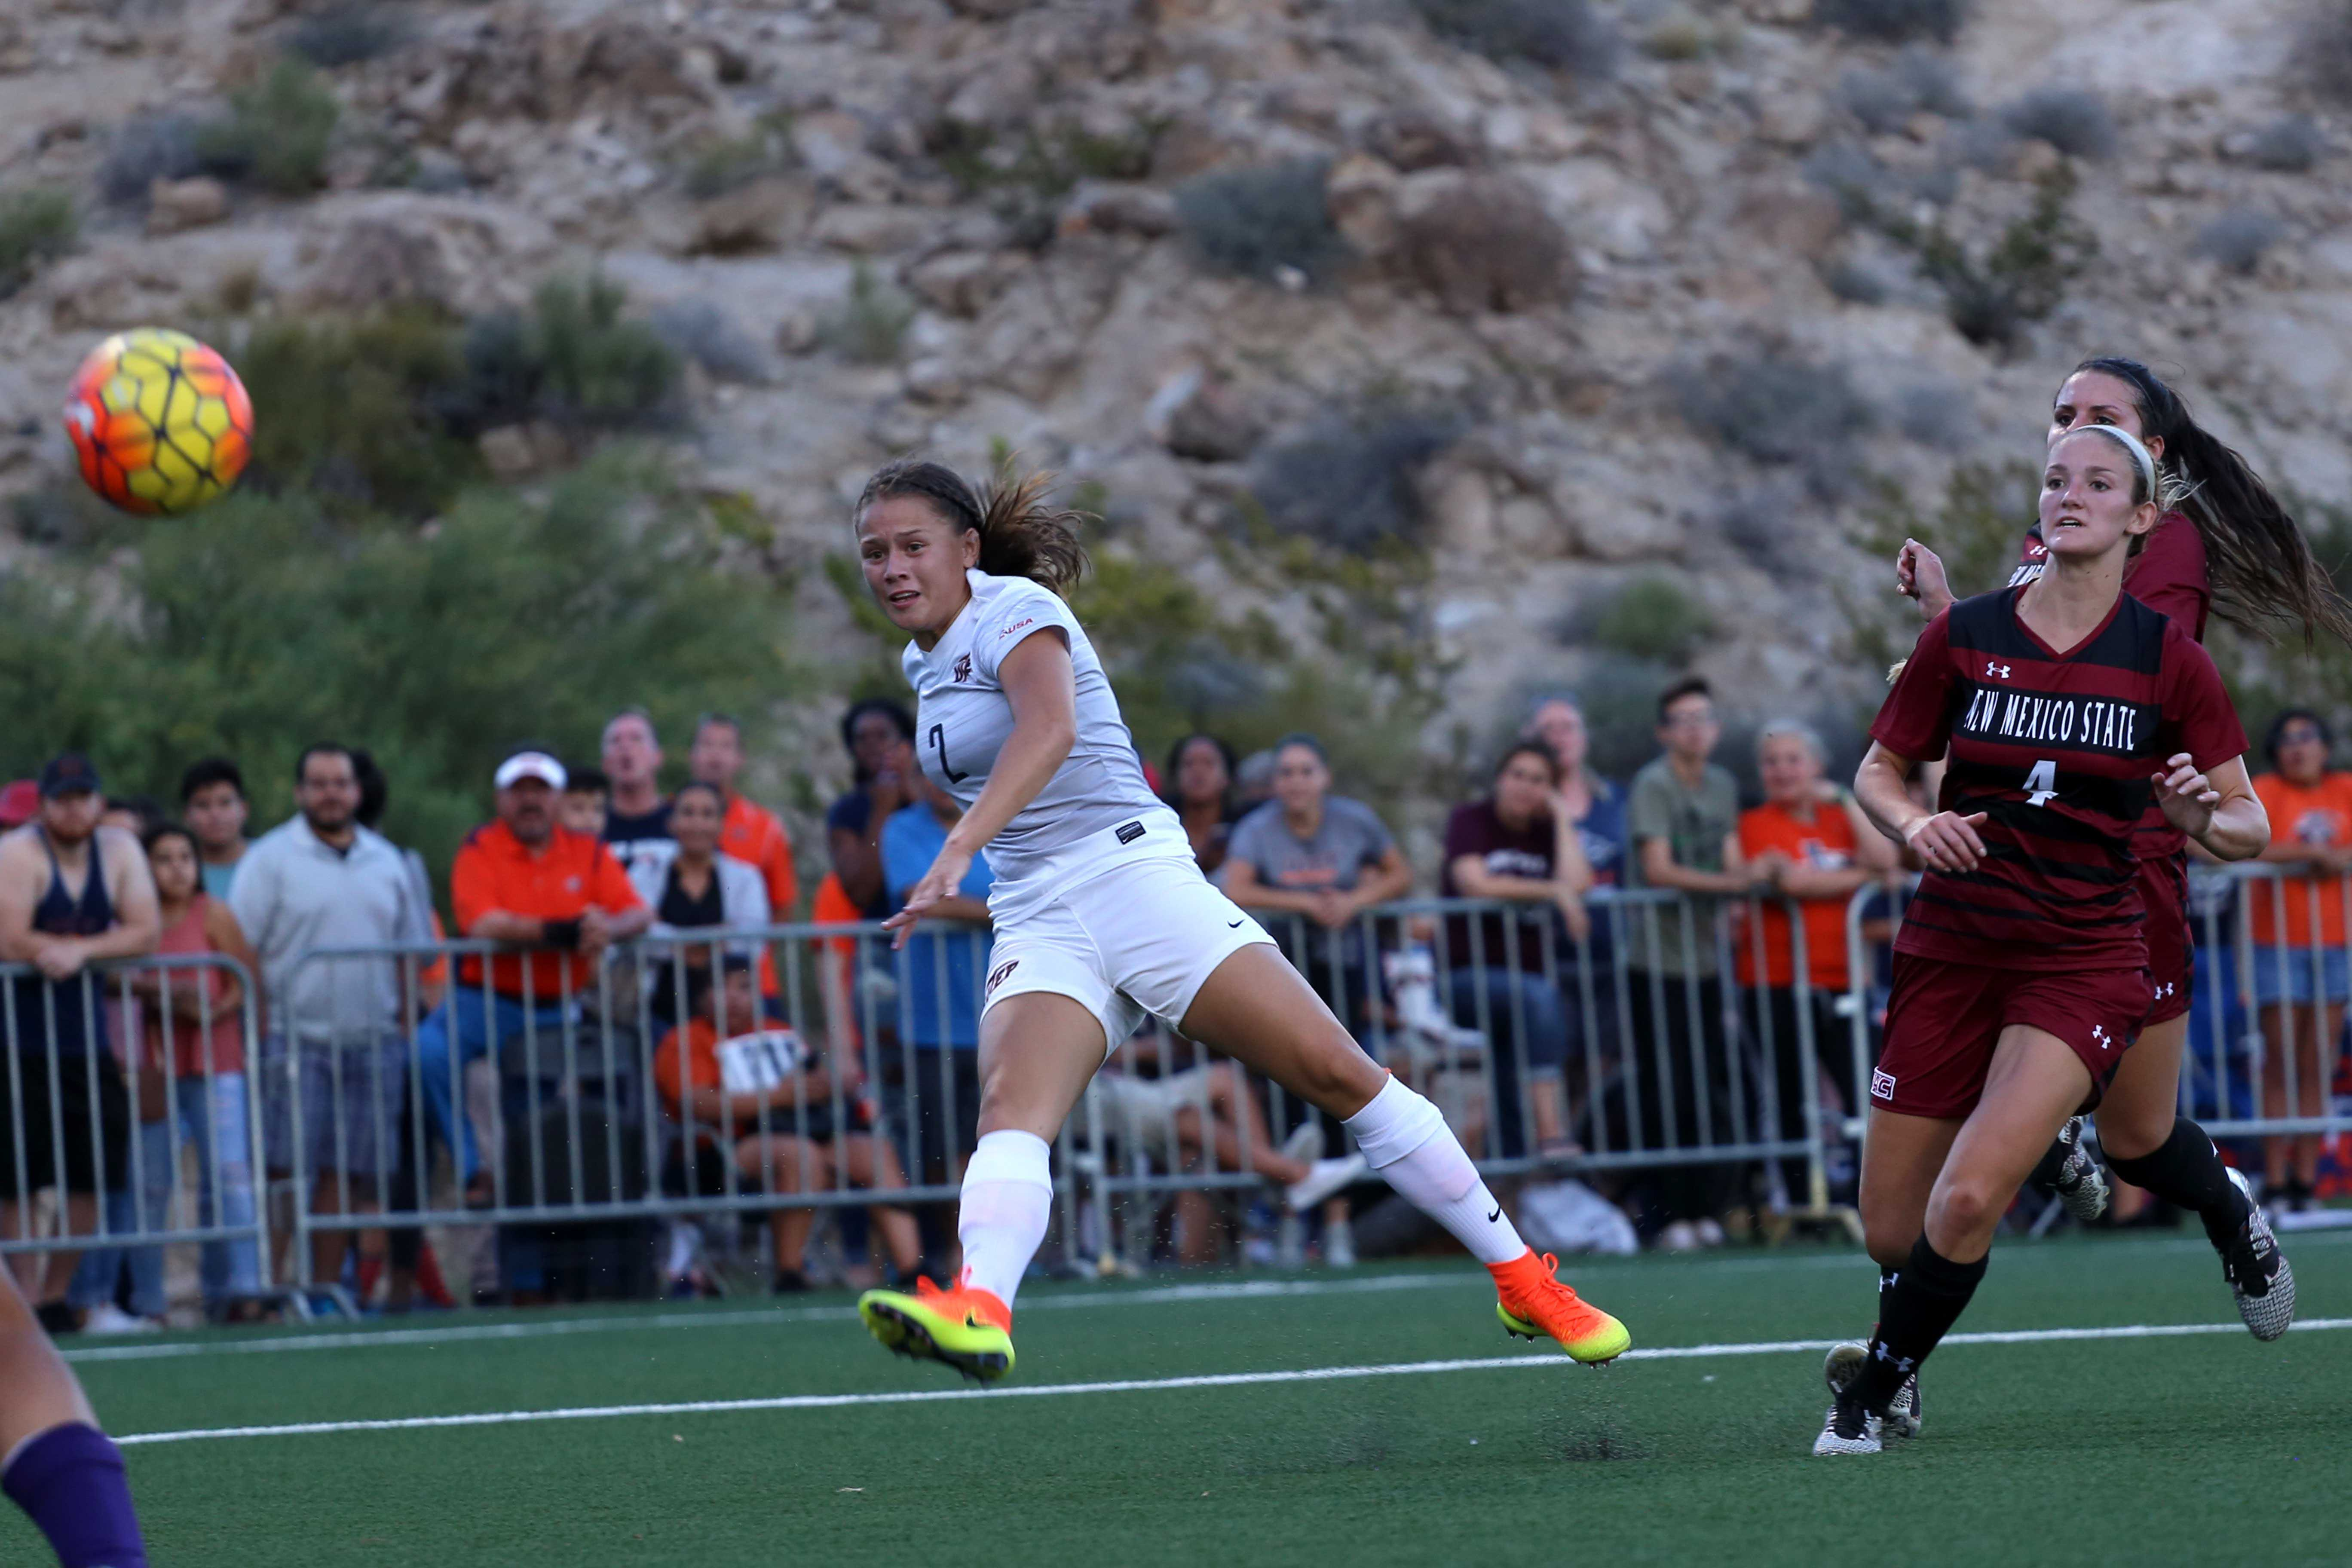 The UTEP Miners Woman's soccer team played against the NMSU Aggies at the University Field on August 19, 2016.